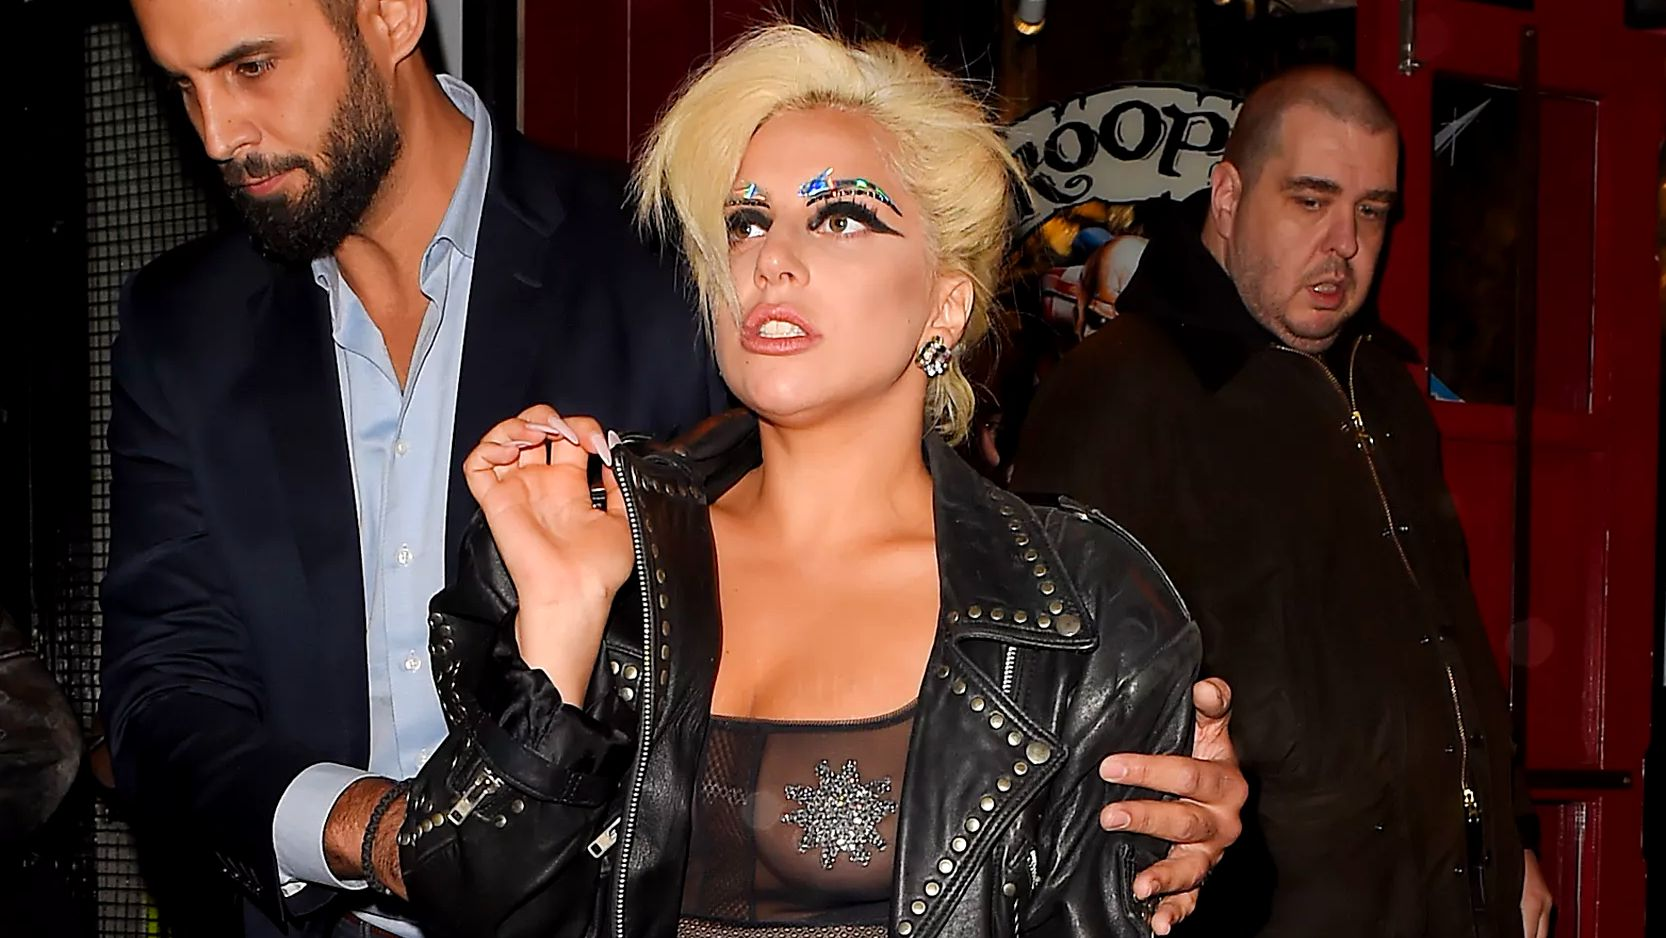 LONDON, ENGLAND - JUNE 09: Lady Gaga is seen in Soho after her Royal Albert Hall concert with Tony Bennett is cancelled due to Bennett falling ill on June 9, 2015 in London, England.